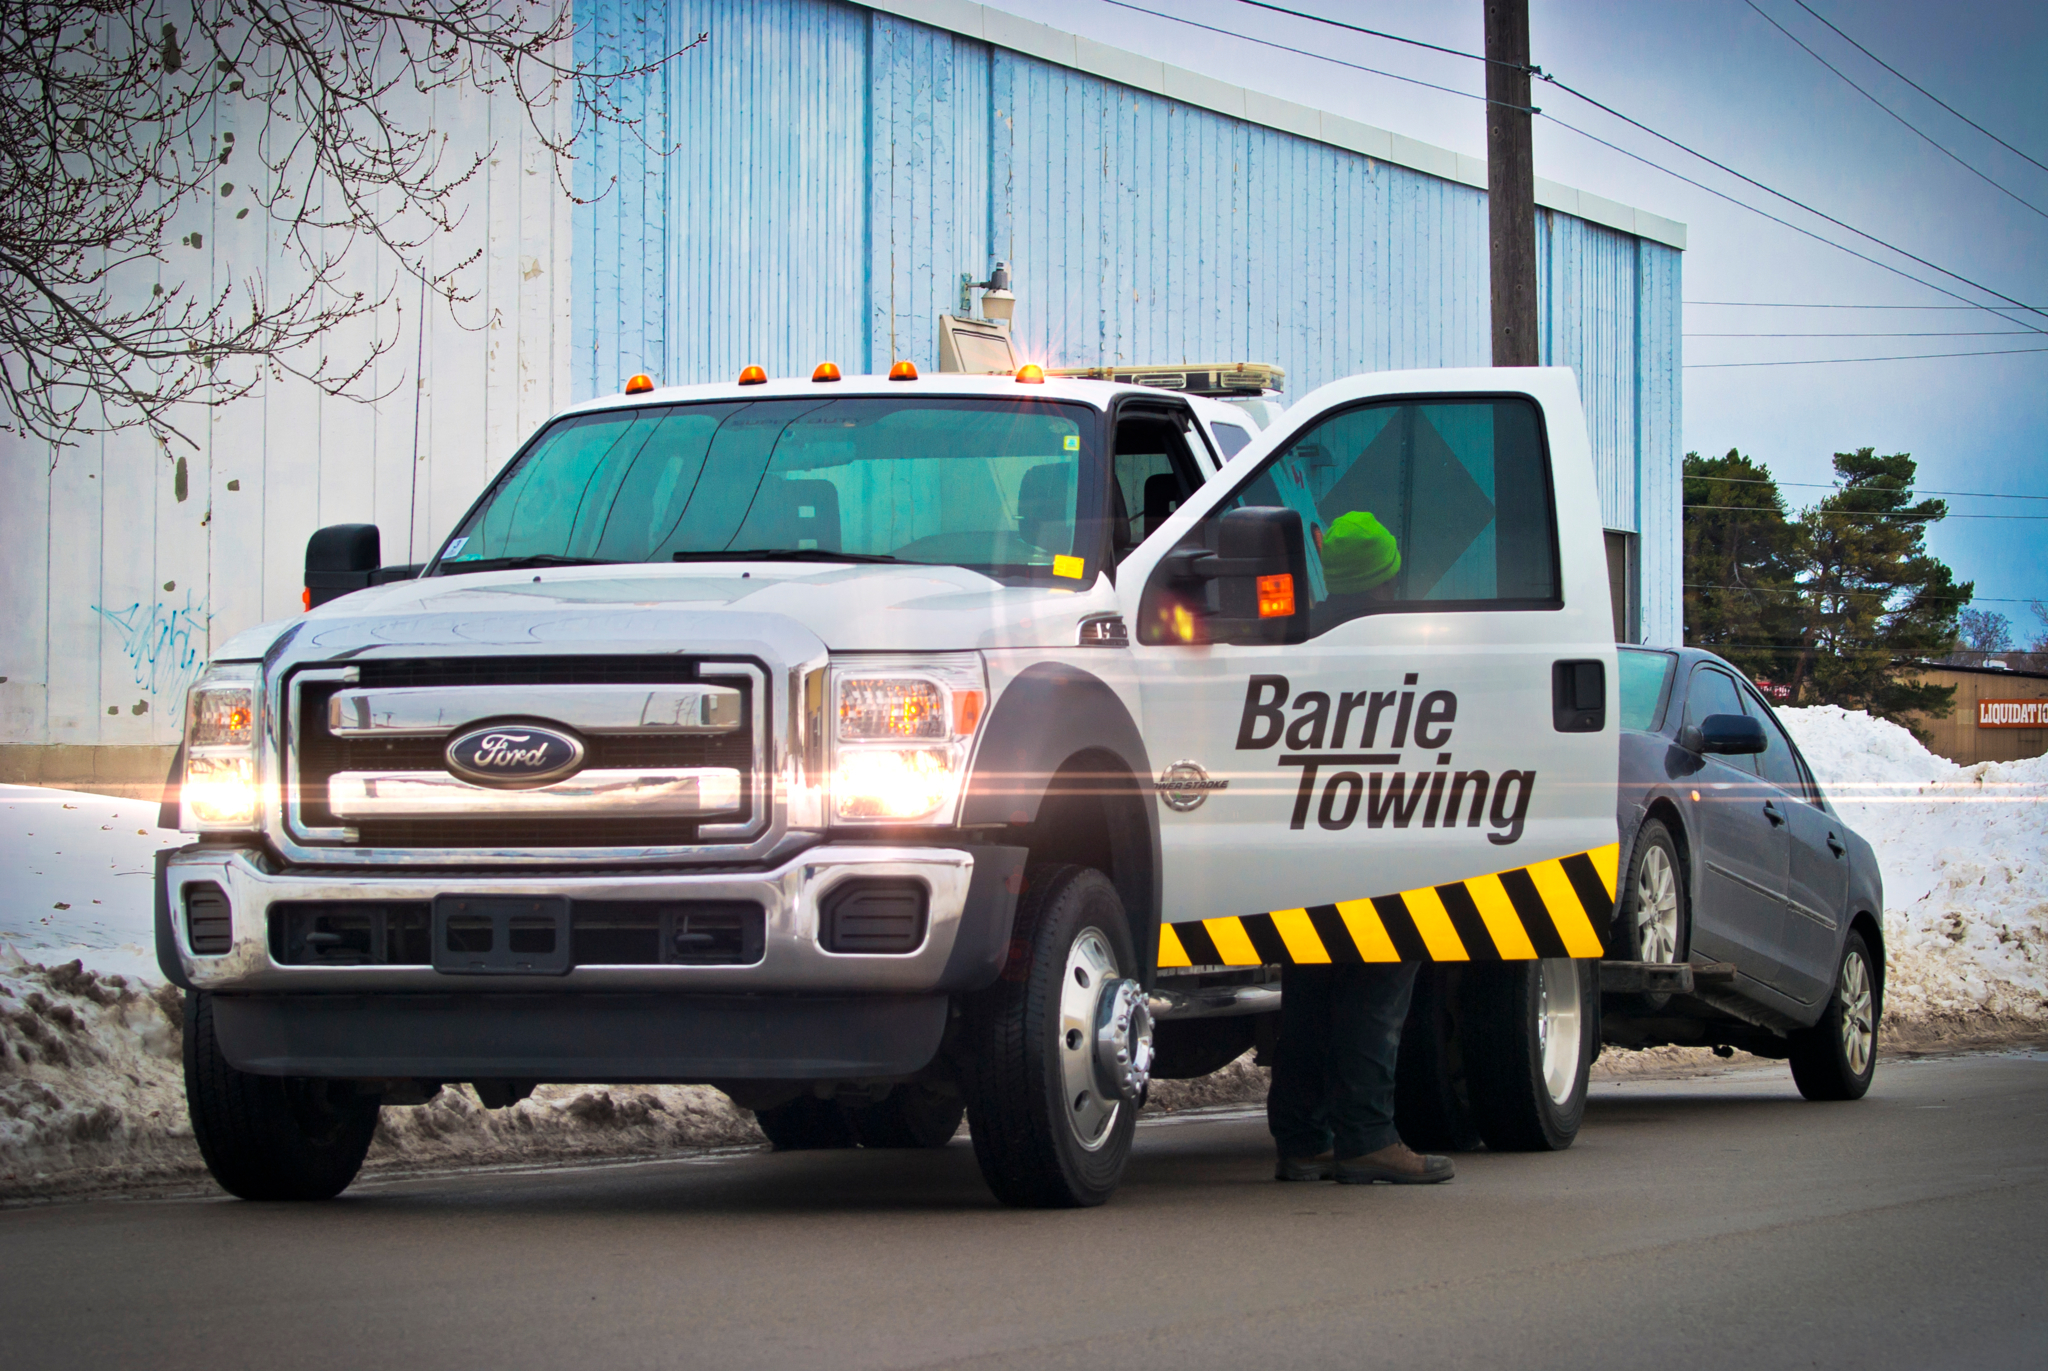 Barrie Towing & Recovery Ltd